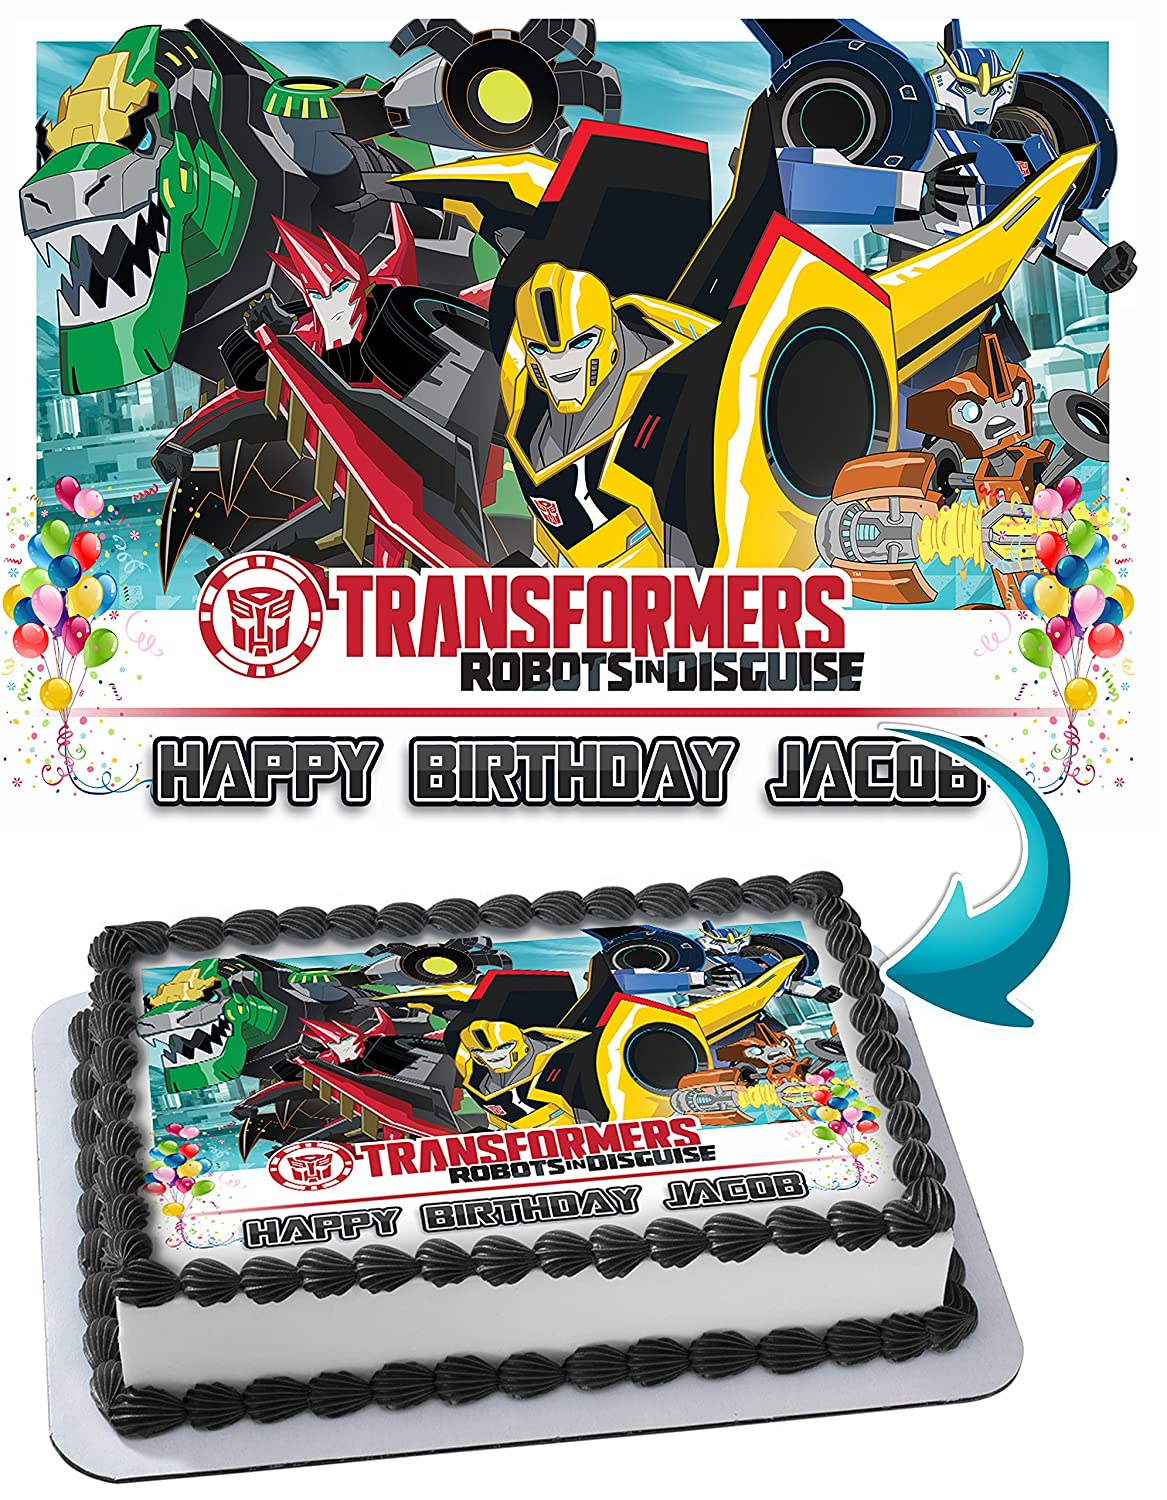 Dinotrux Transformers Robots Dinosaur Edible Image Cake Topper Personalized Icing Sugar Paper A4 Sheet Frosting Photo Amazon Grocery